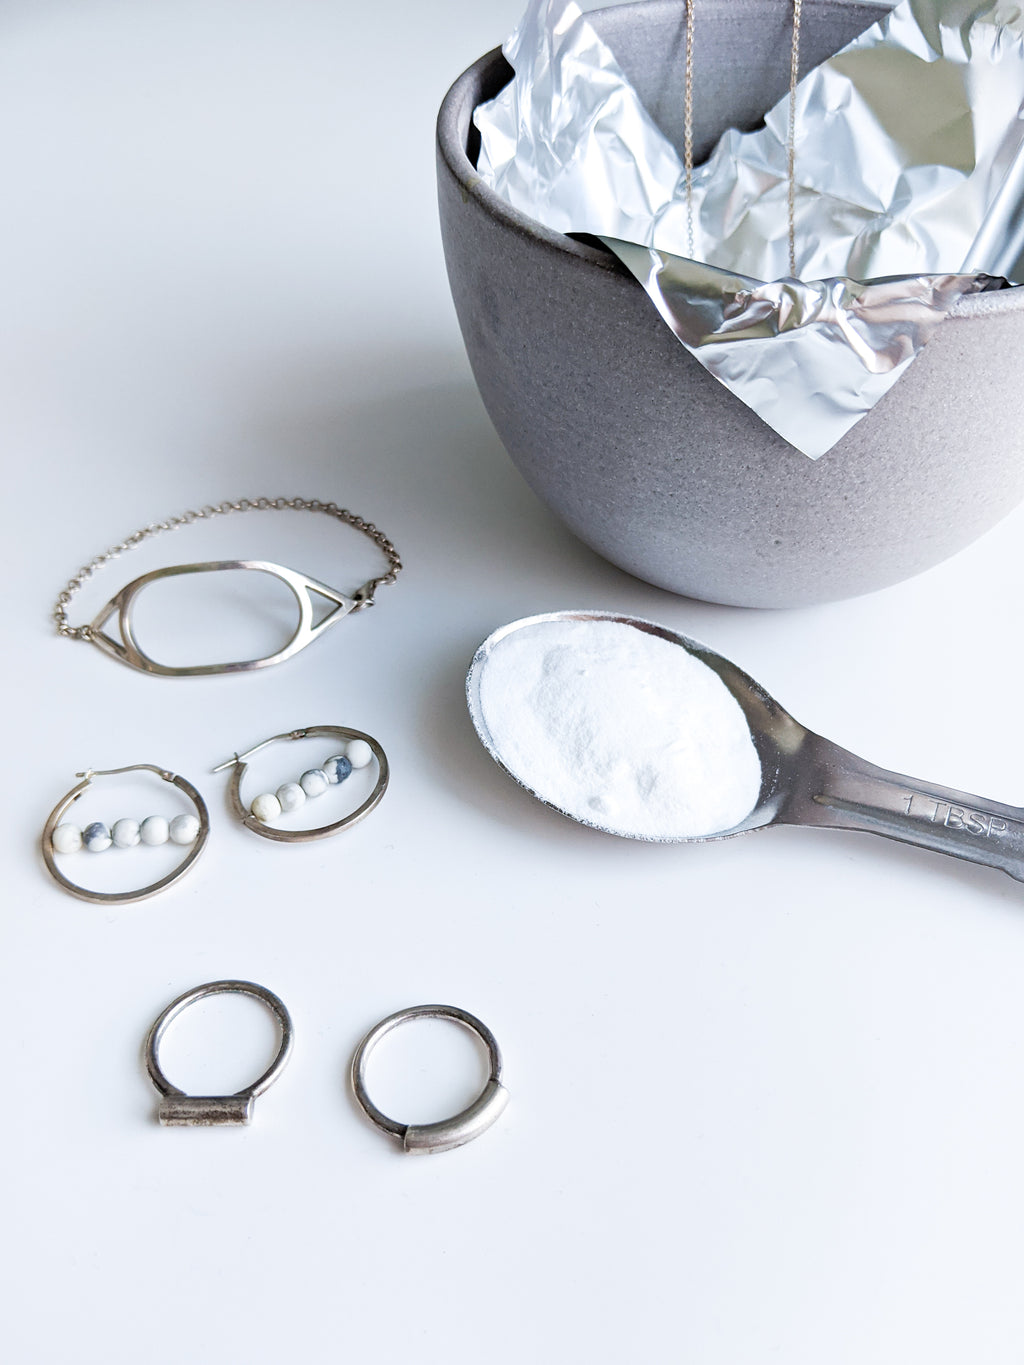 How to clean sterling silver jewelry with backing soda